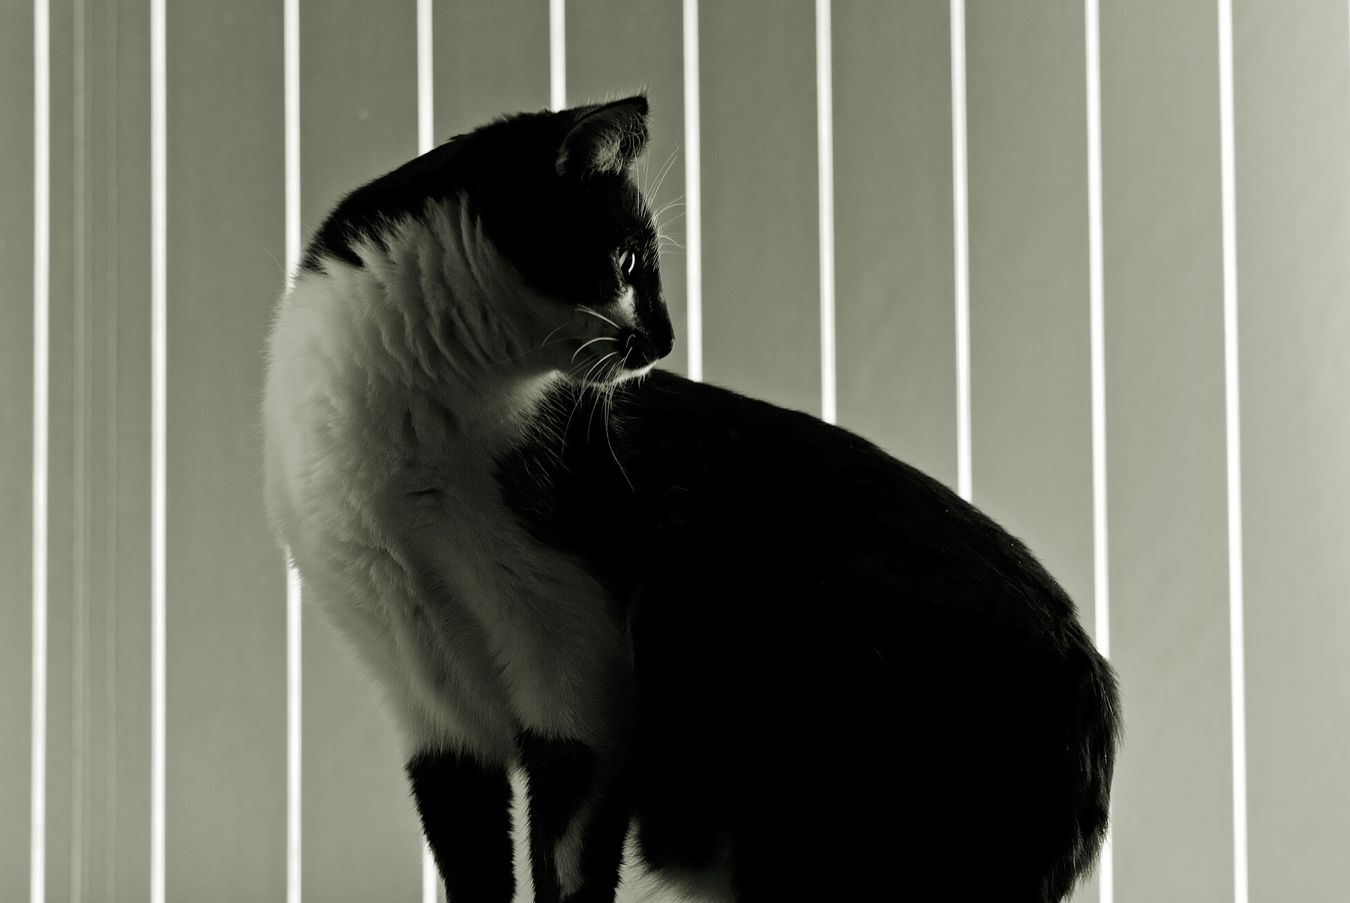 My Cat Cats Animal Love Monocrome Black & White Light And Shadow Silhouette 35mm 1.8 Nikon